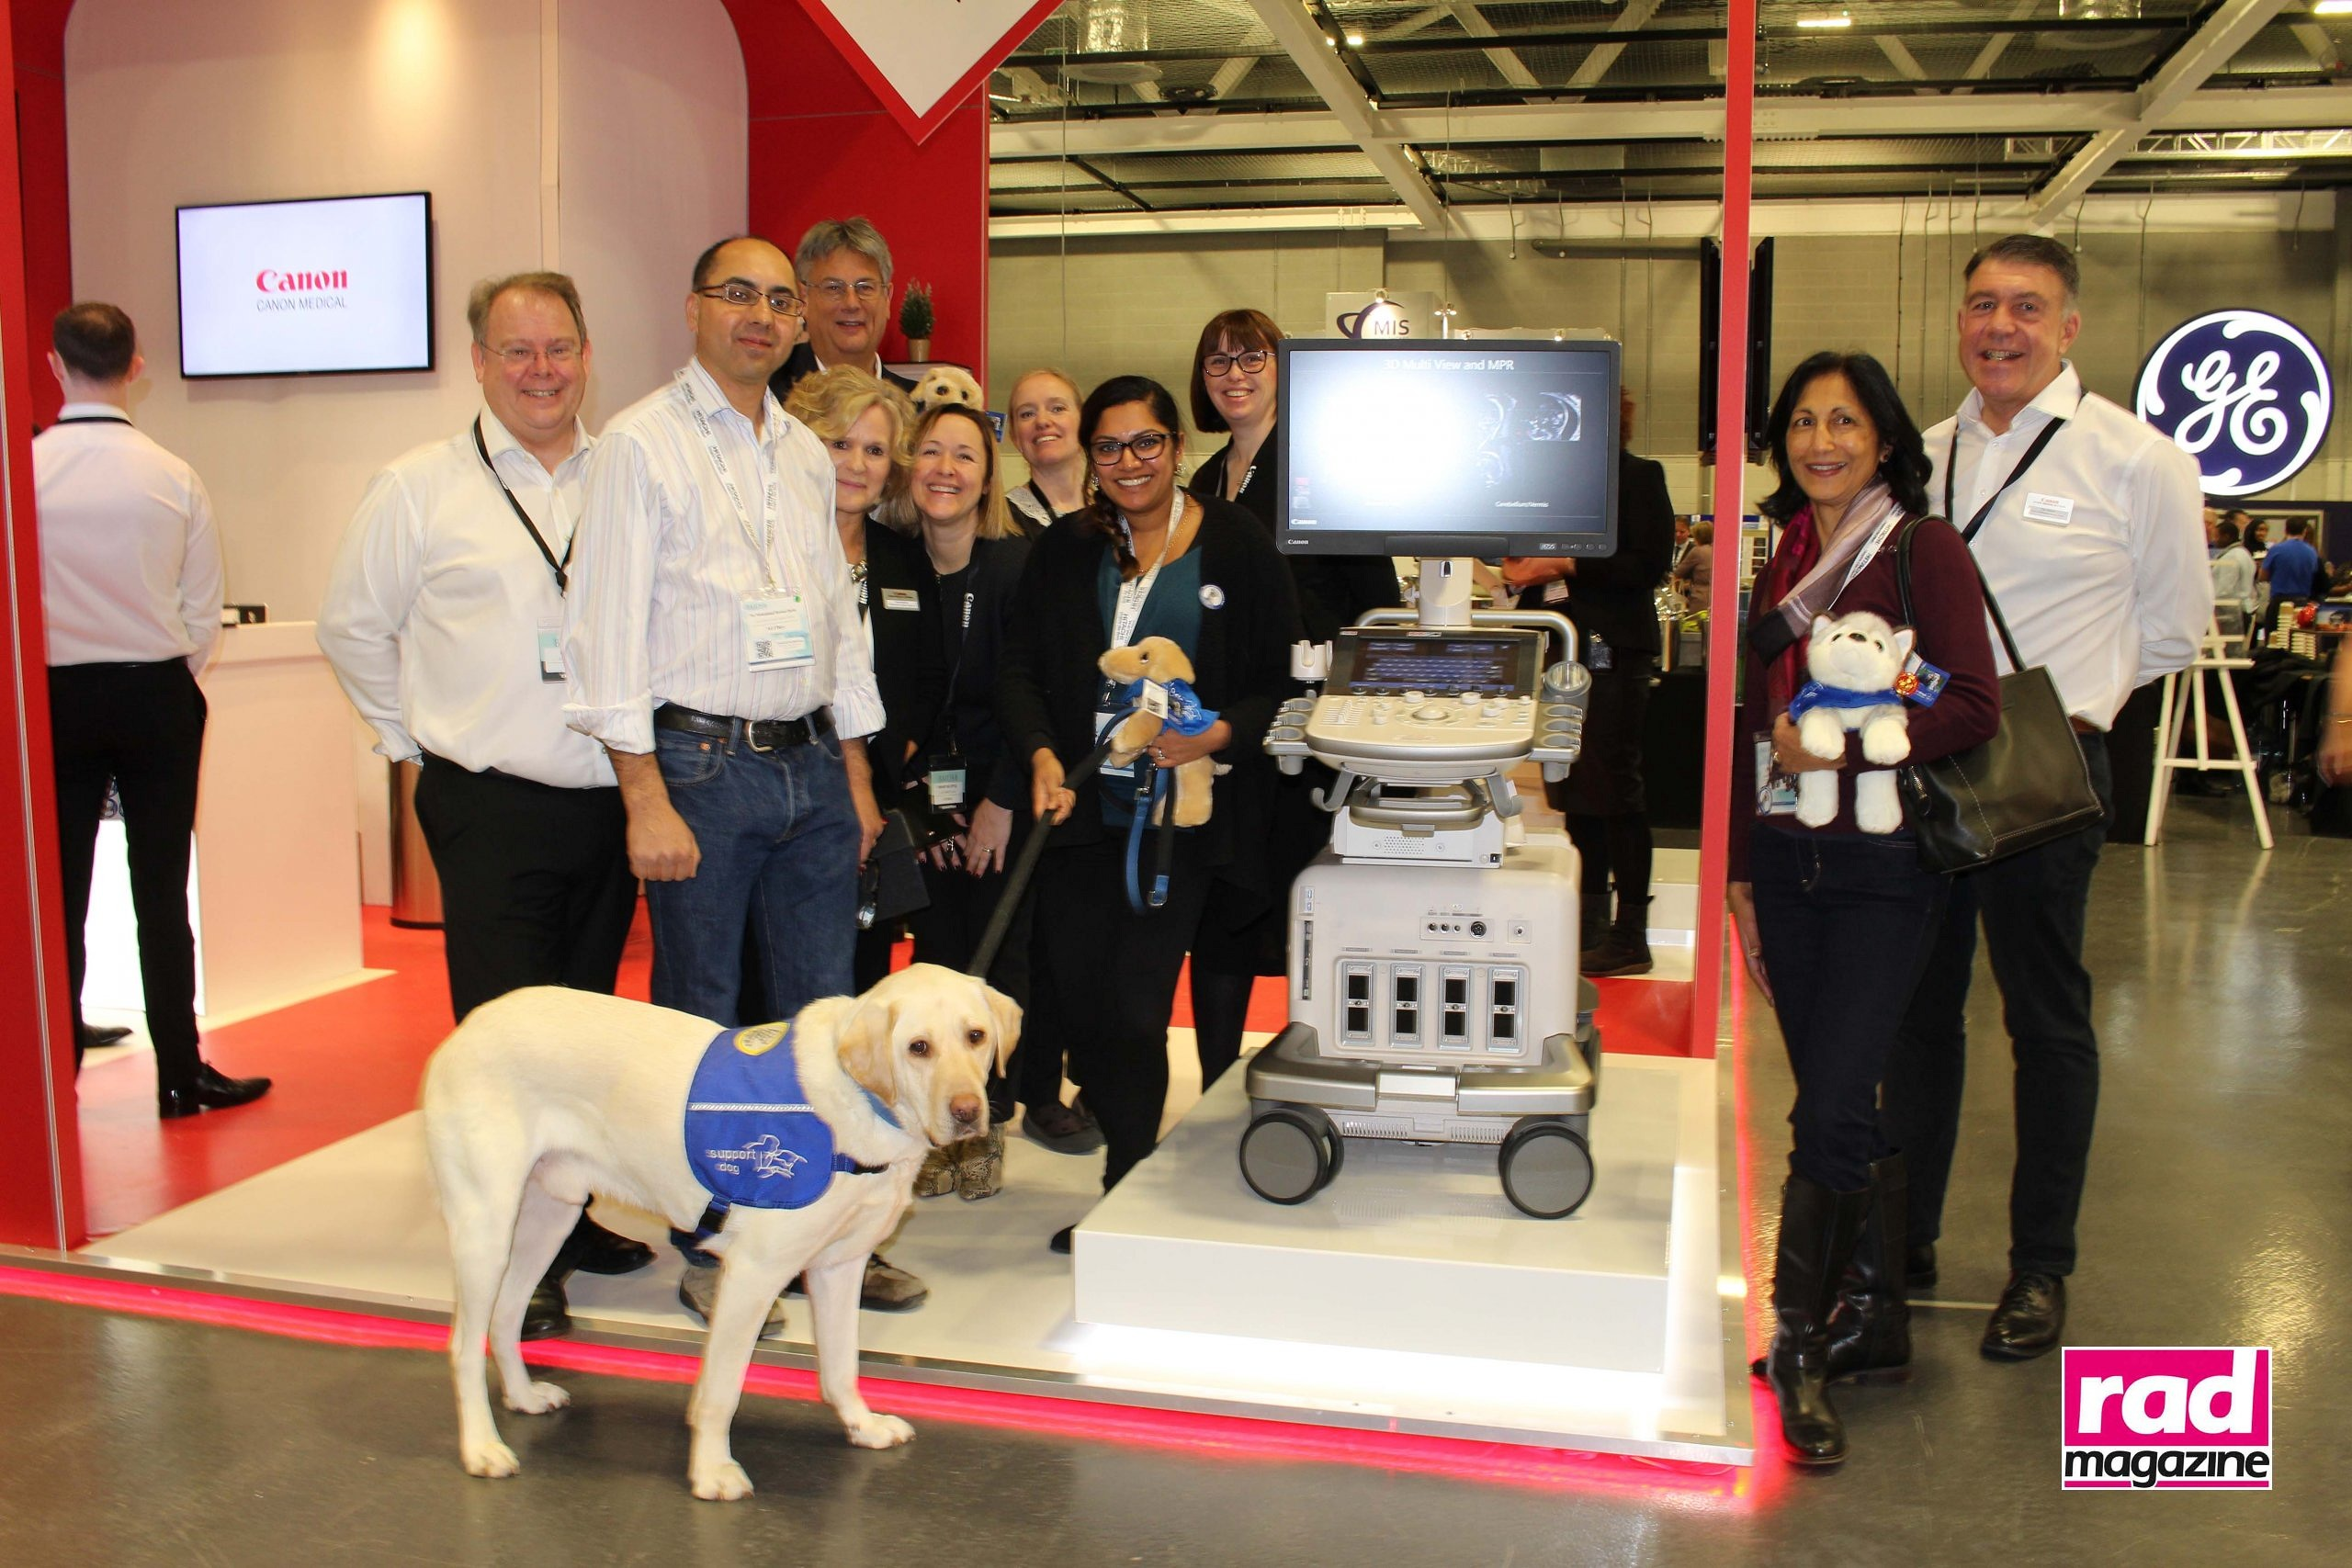 Canon Medical Systems at BMUS 2019